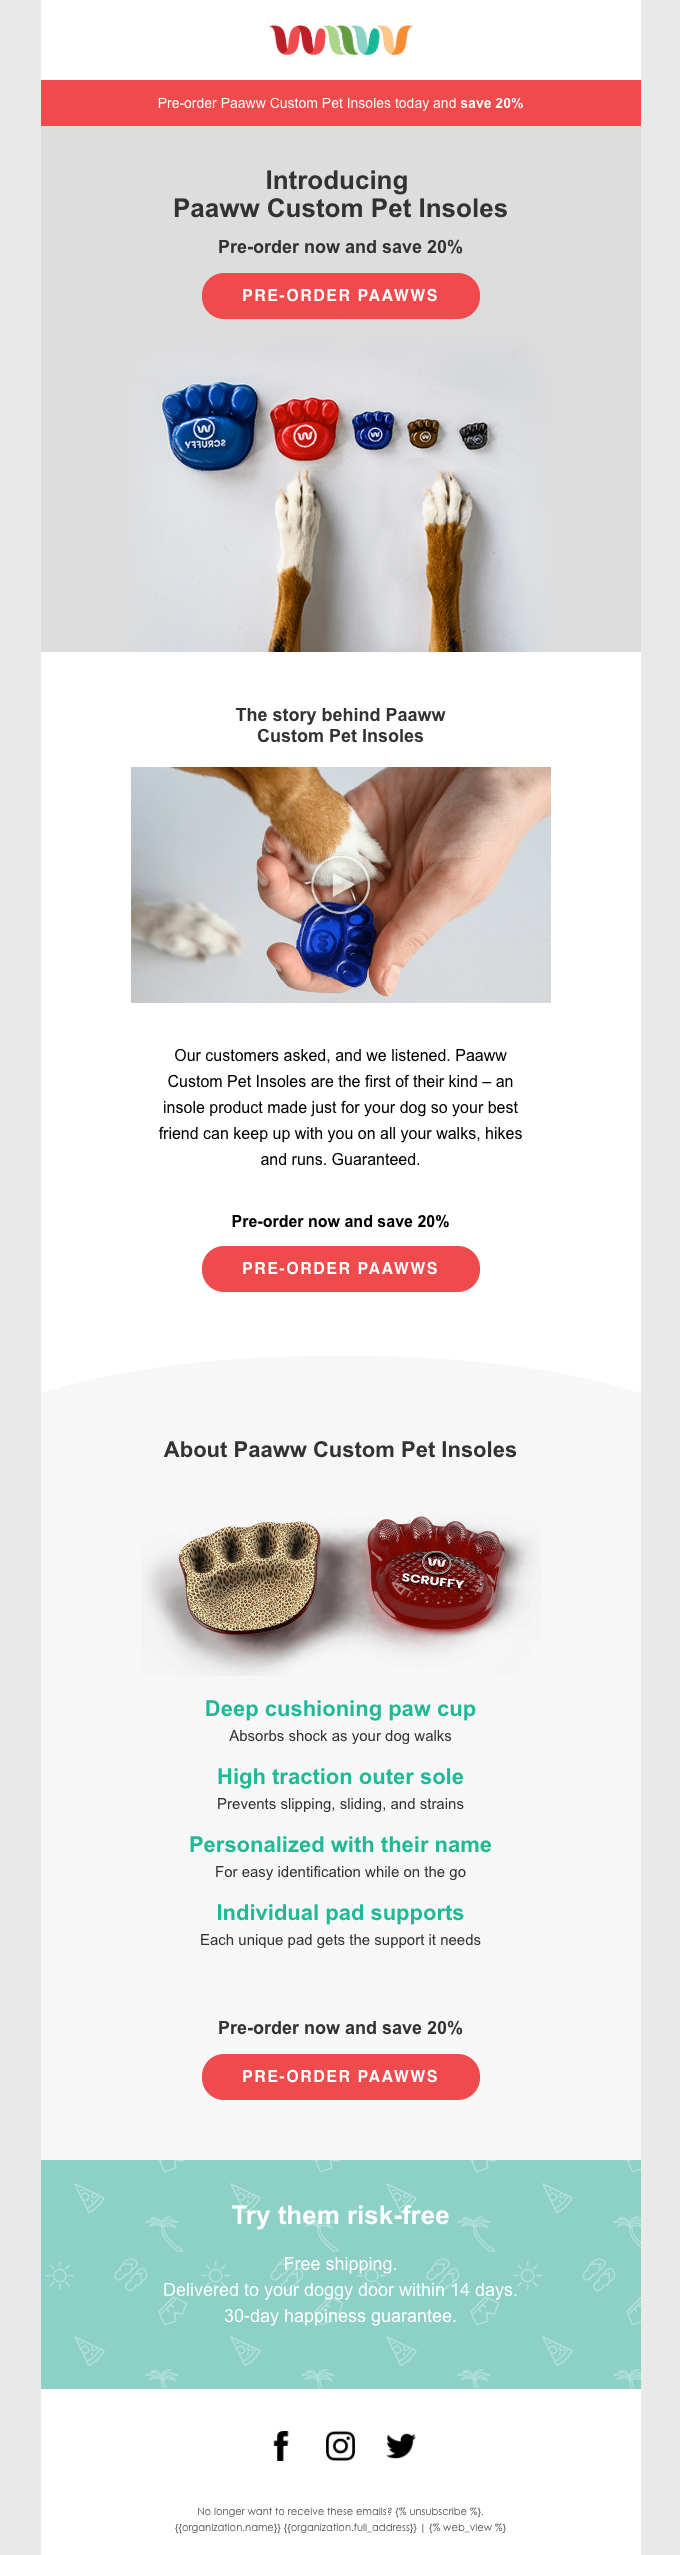 Paaww: the first insole made for dogs